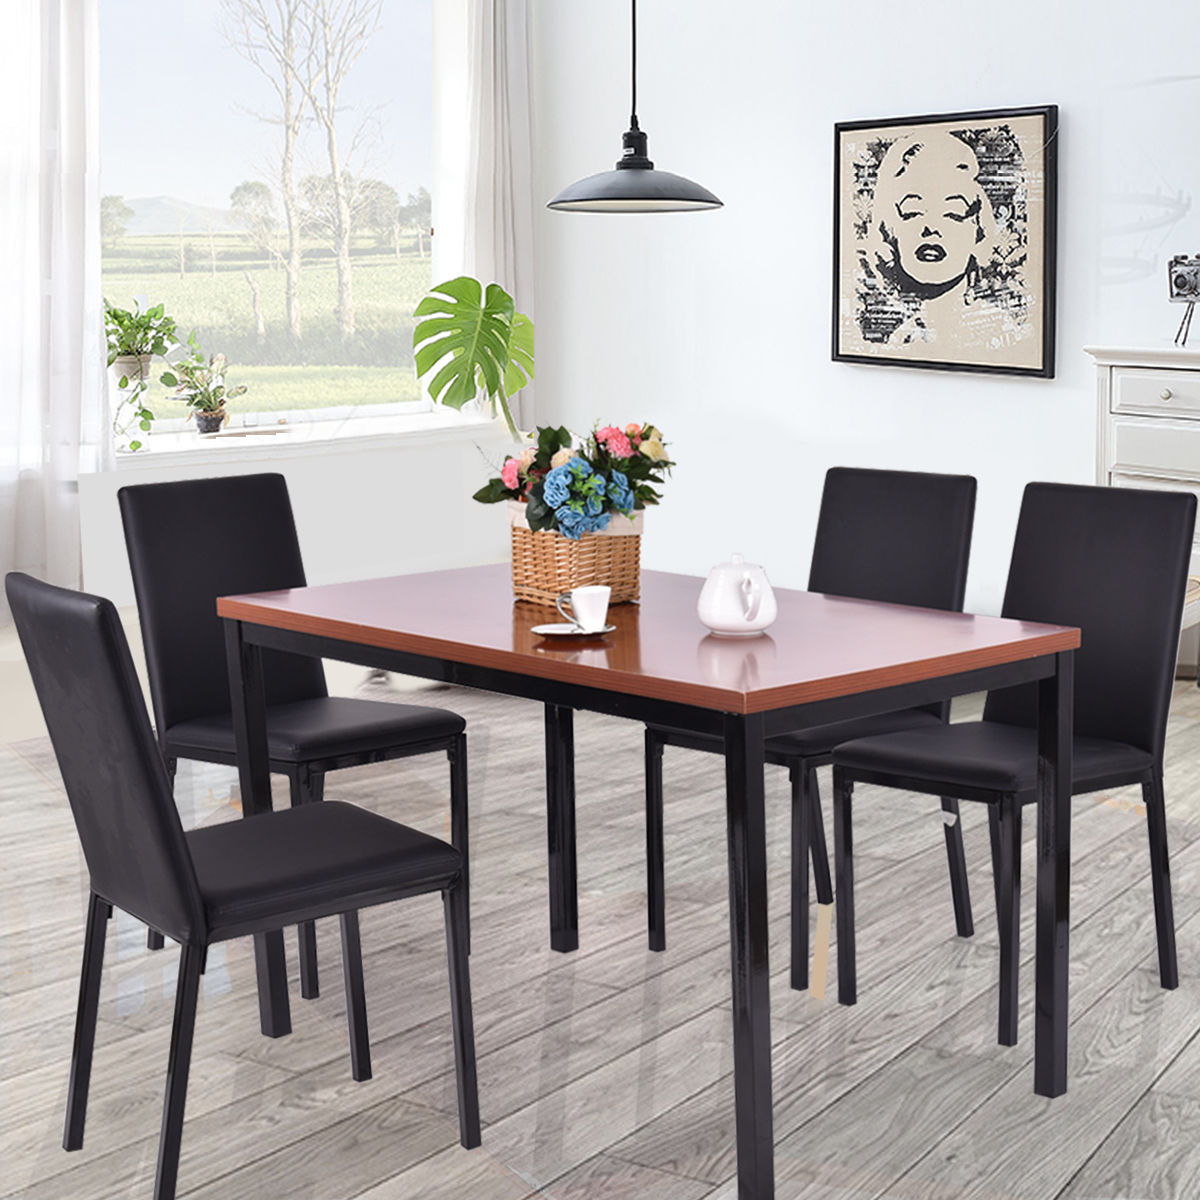 Click here to buy Costway 5 PCS Dining Table Set 4 PU Leather Chairs Home Kitchen Breakfast Furniture by Costway.